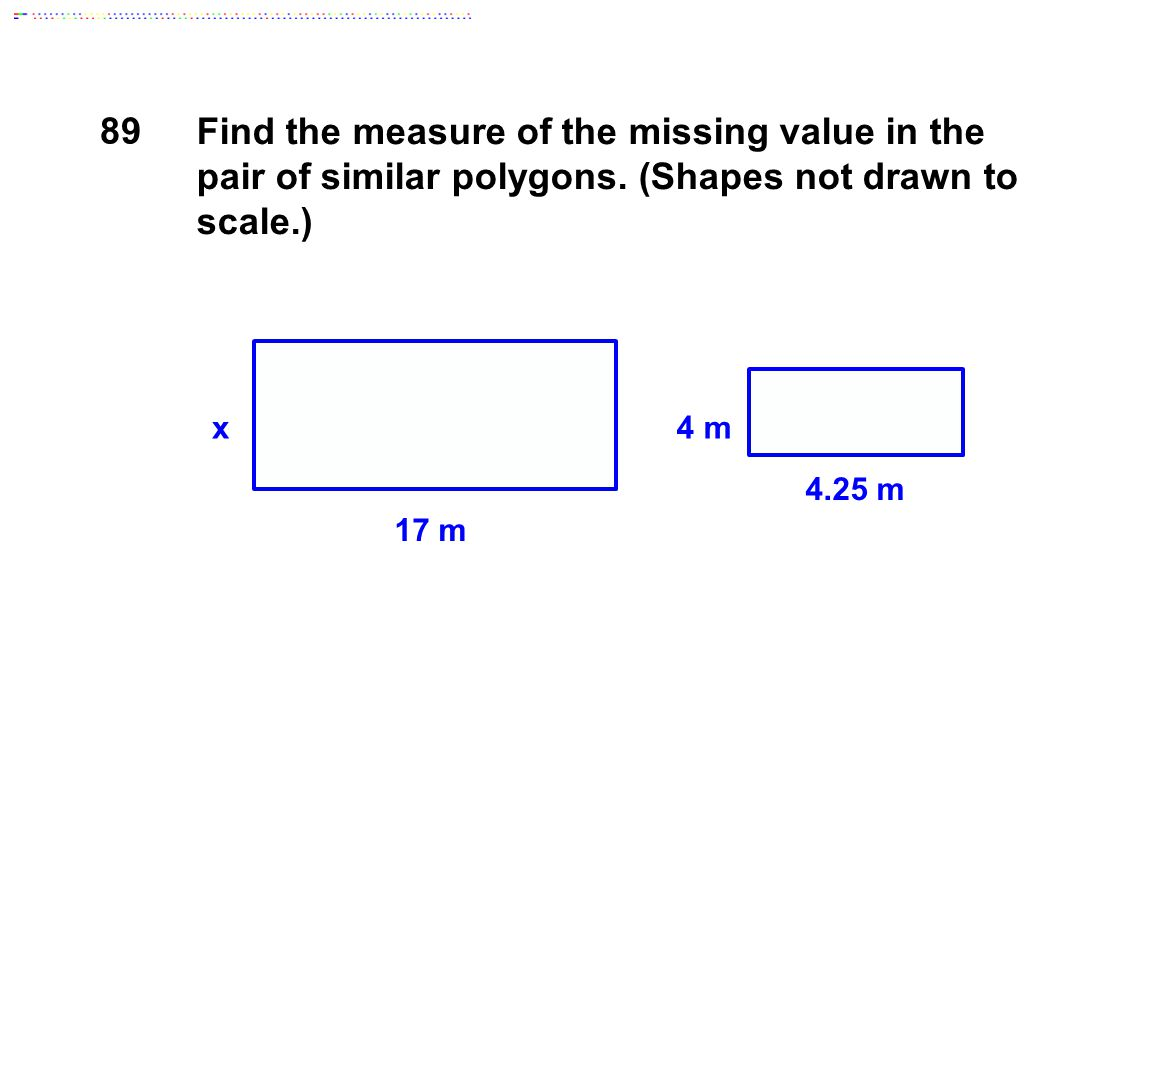 89 Find the measure of the missing value in the pair of similar polygons. (Shapes not drawn to scale.)